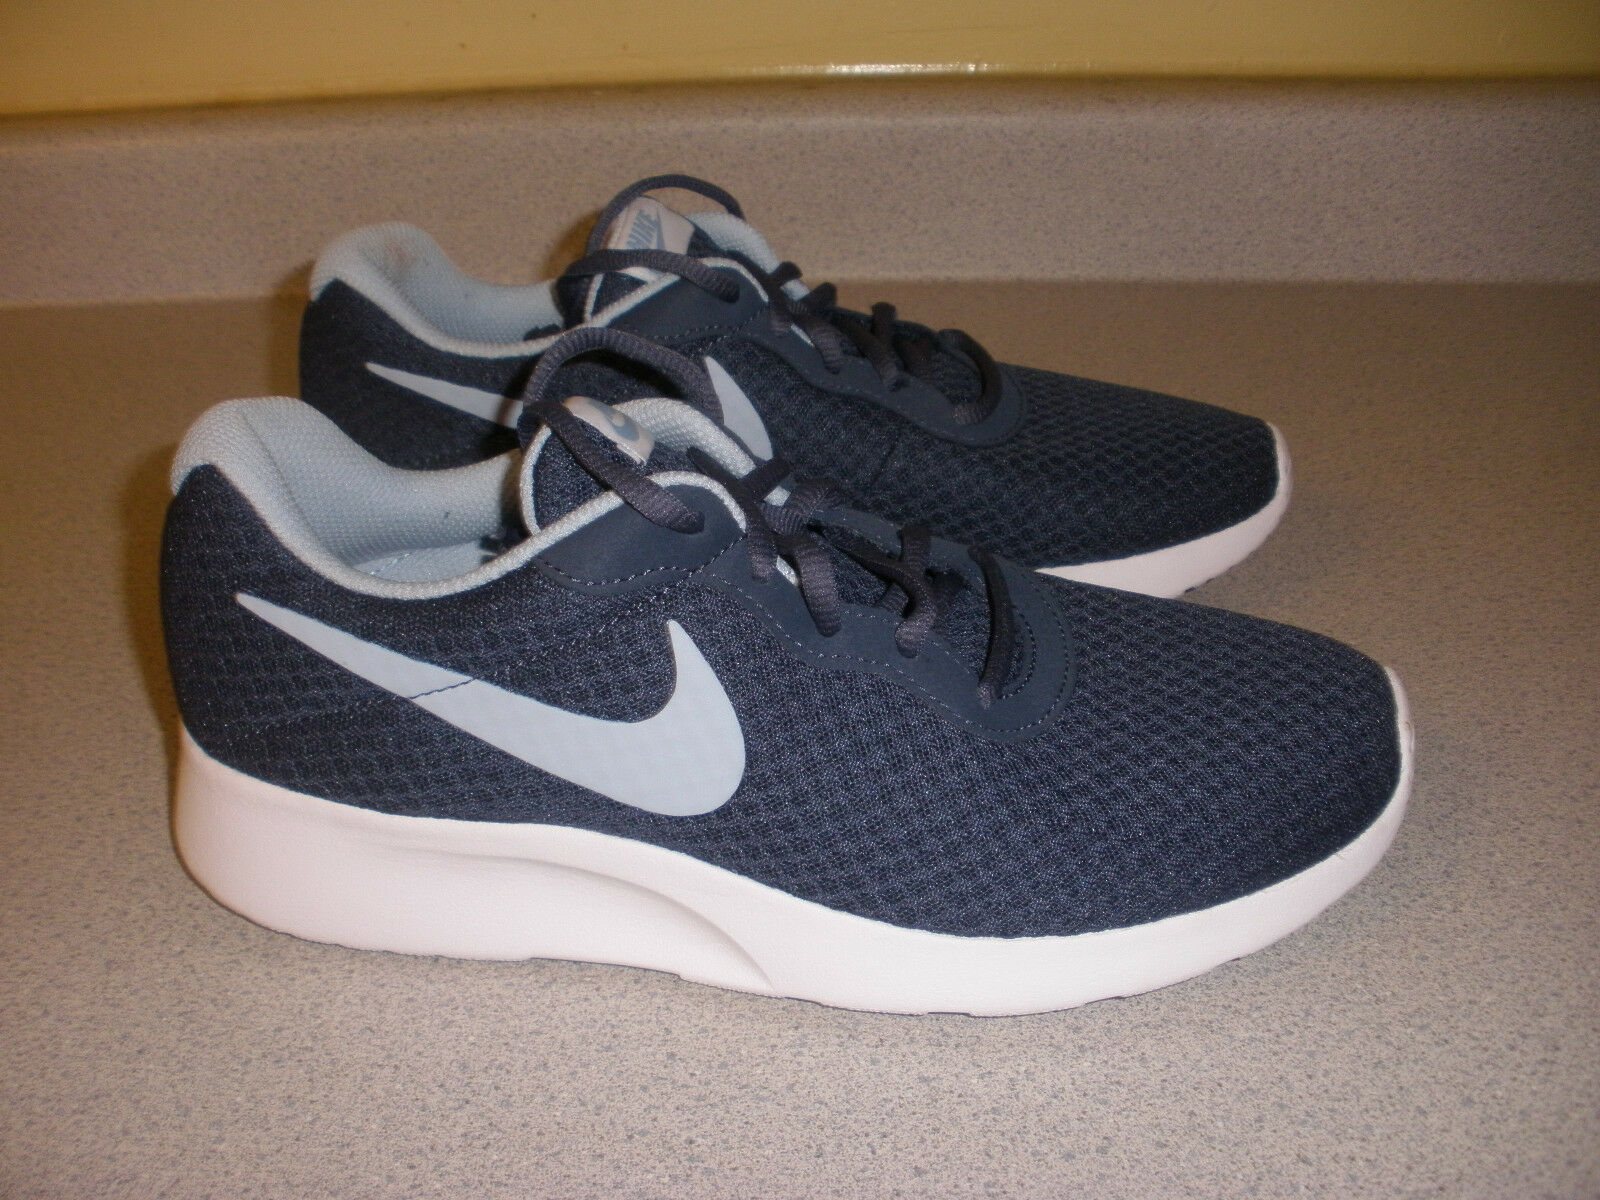 812655-404 Men's Nike Lace Up Running shoes Size 9.5 blueE WHITE